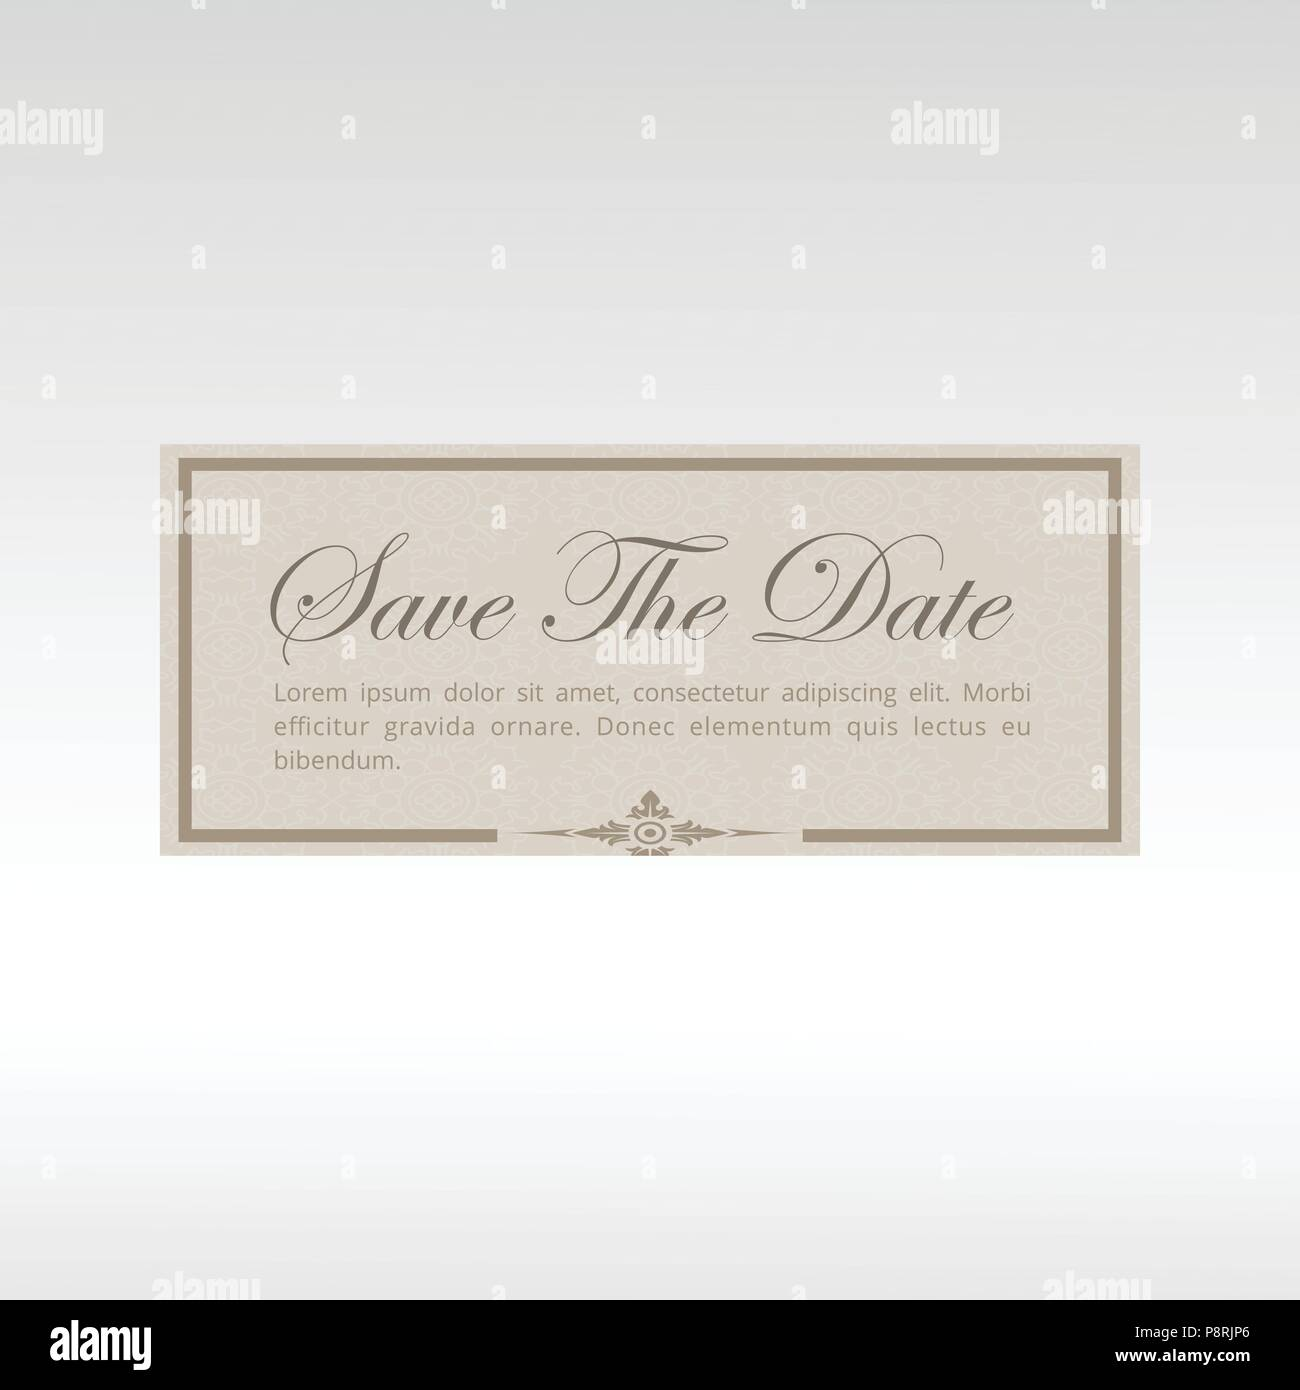 Save The Date For Wedding Invitation Card For Web Design And